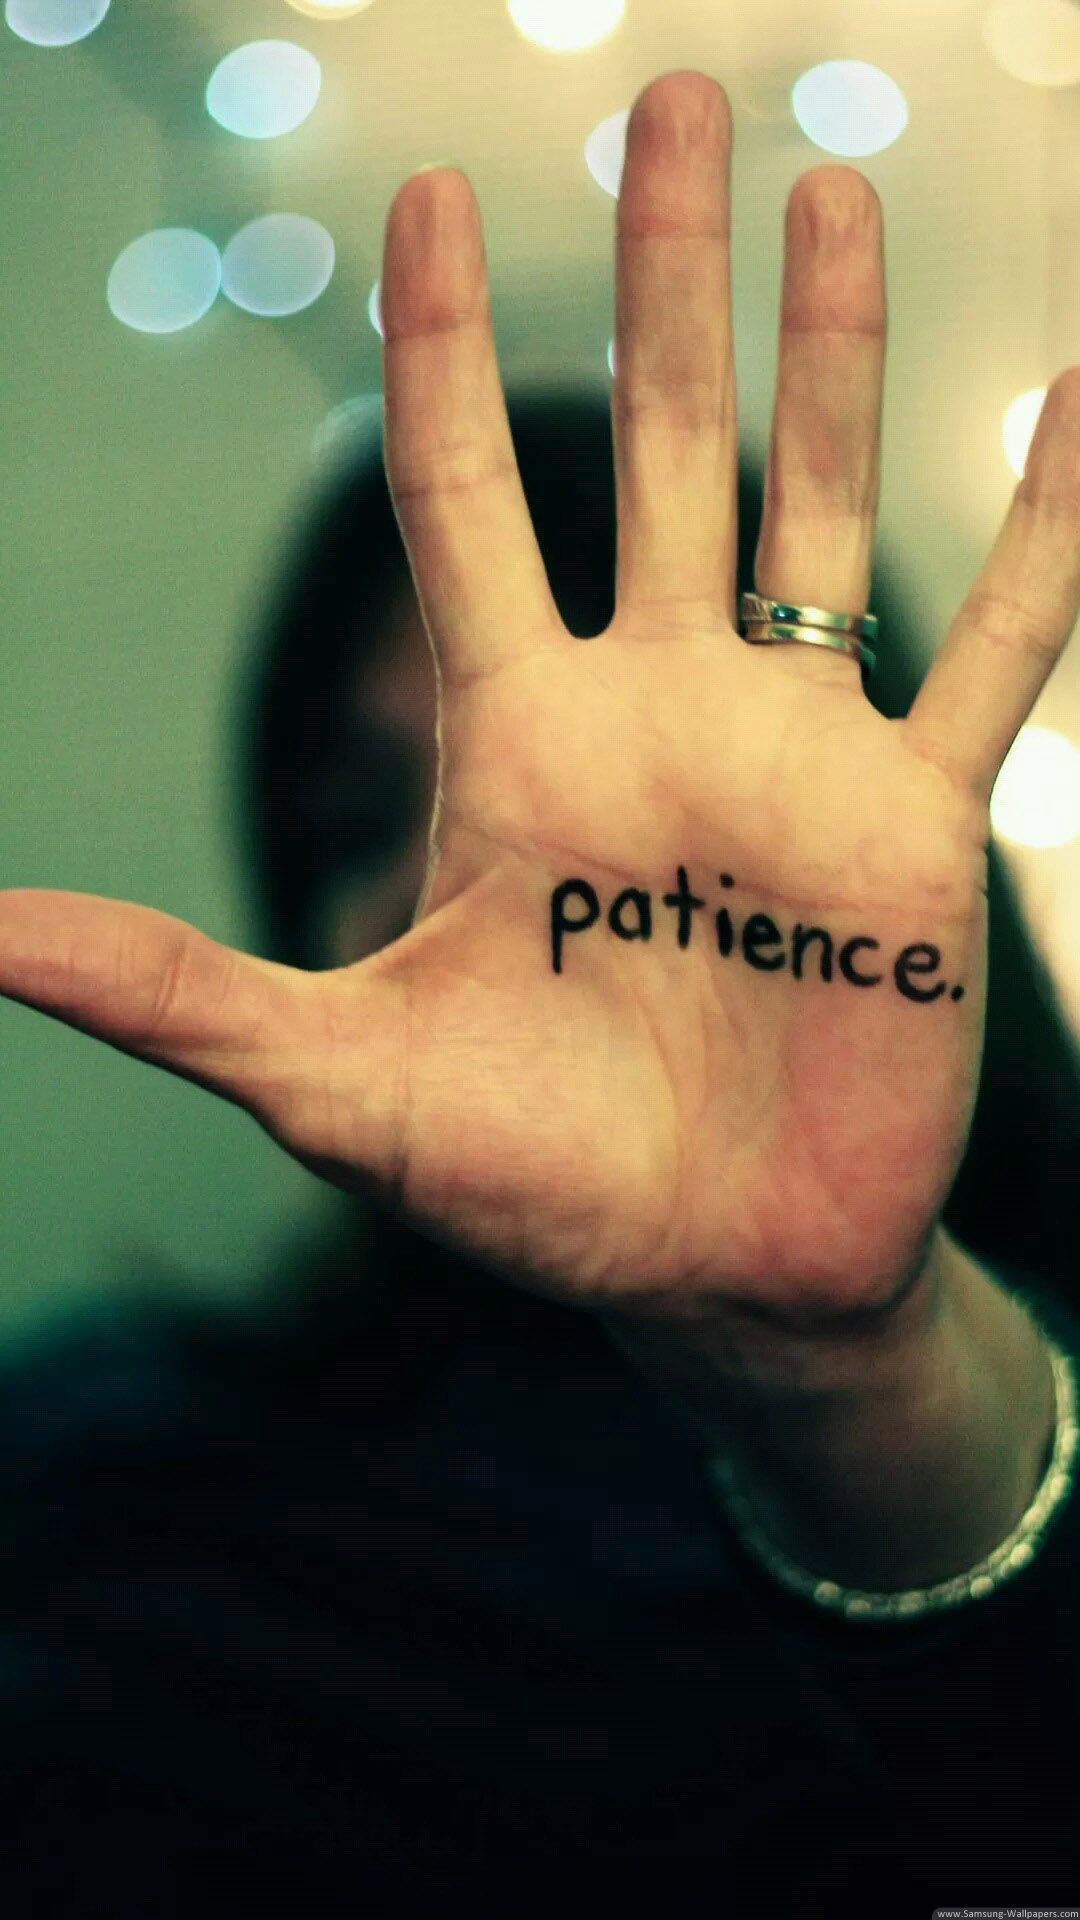 Patience Is A Virtue iPhone 6 Plus HD Wallpaper Patience